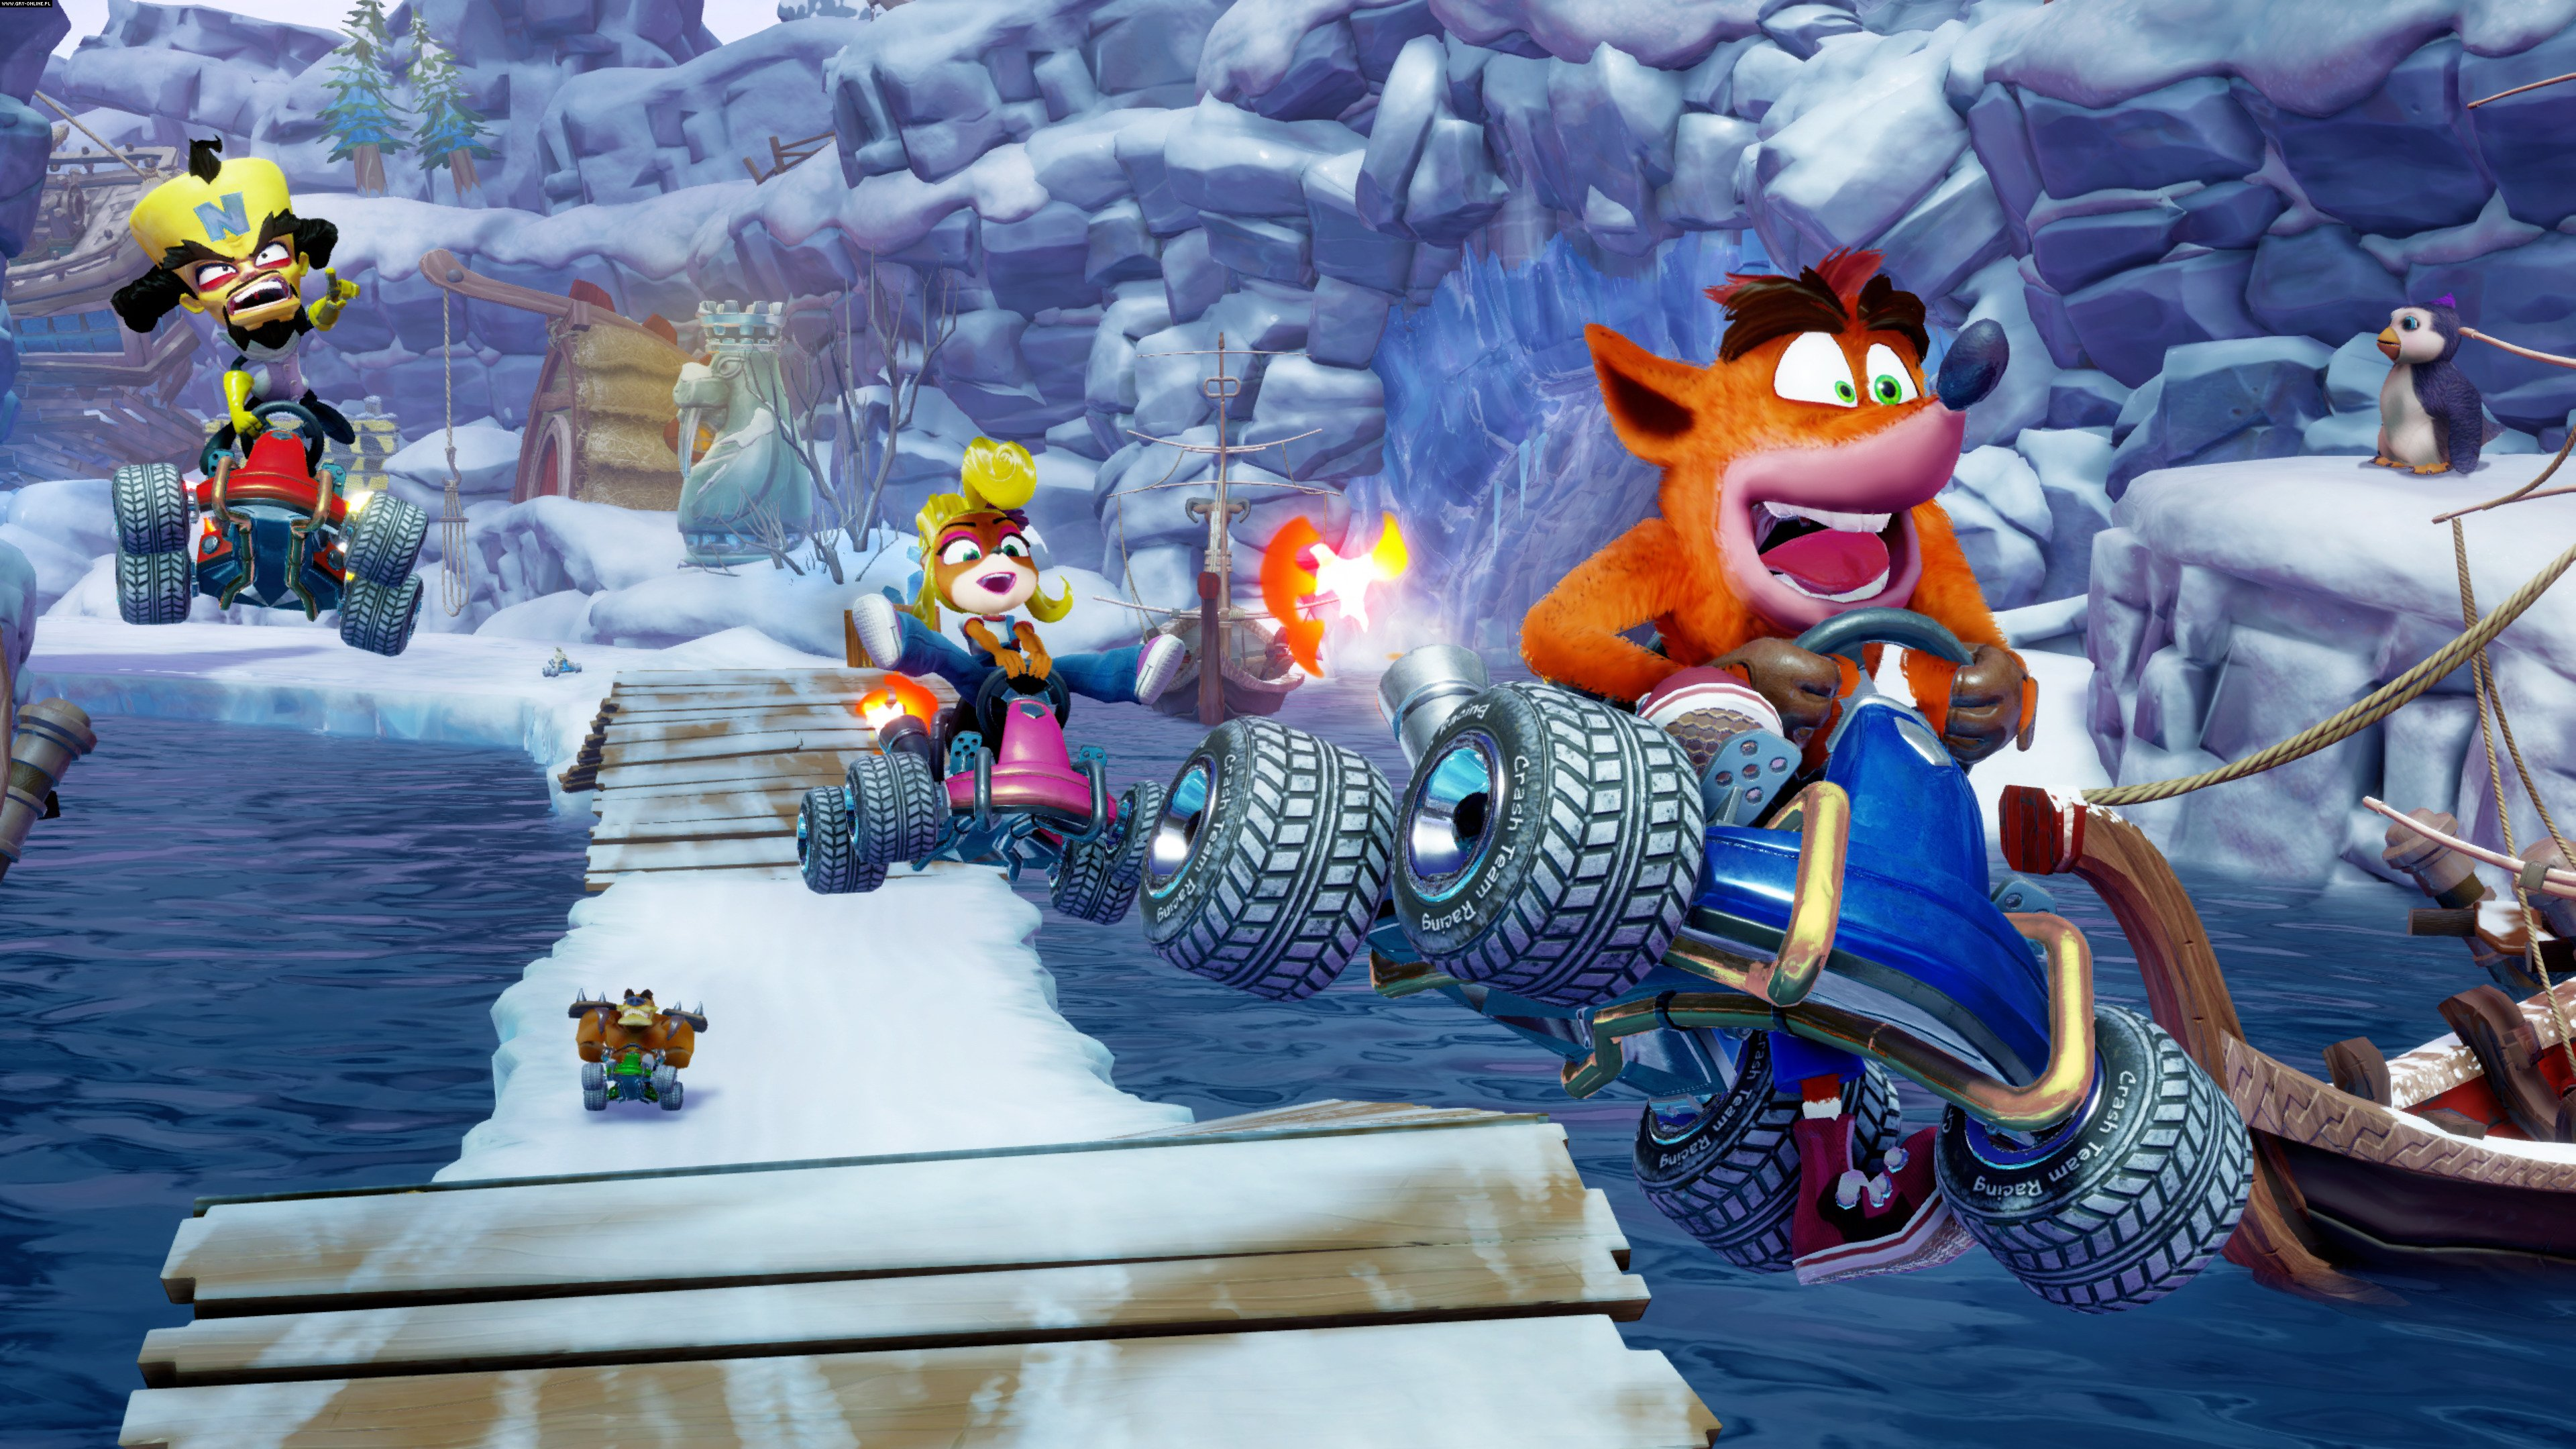 Crash Team Racing Nitro-Fueled PS4 Games Image 24/24, Beenox Inc., Activision Blizzard